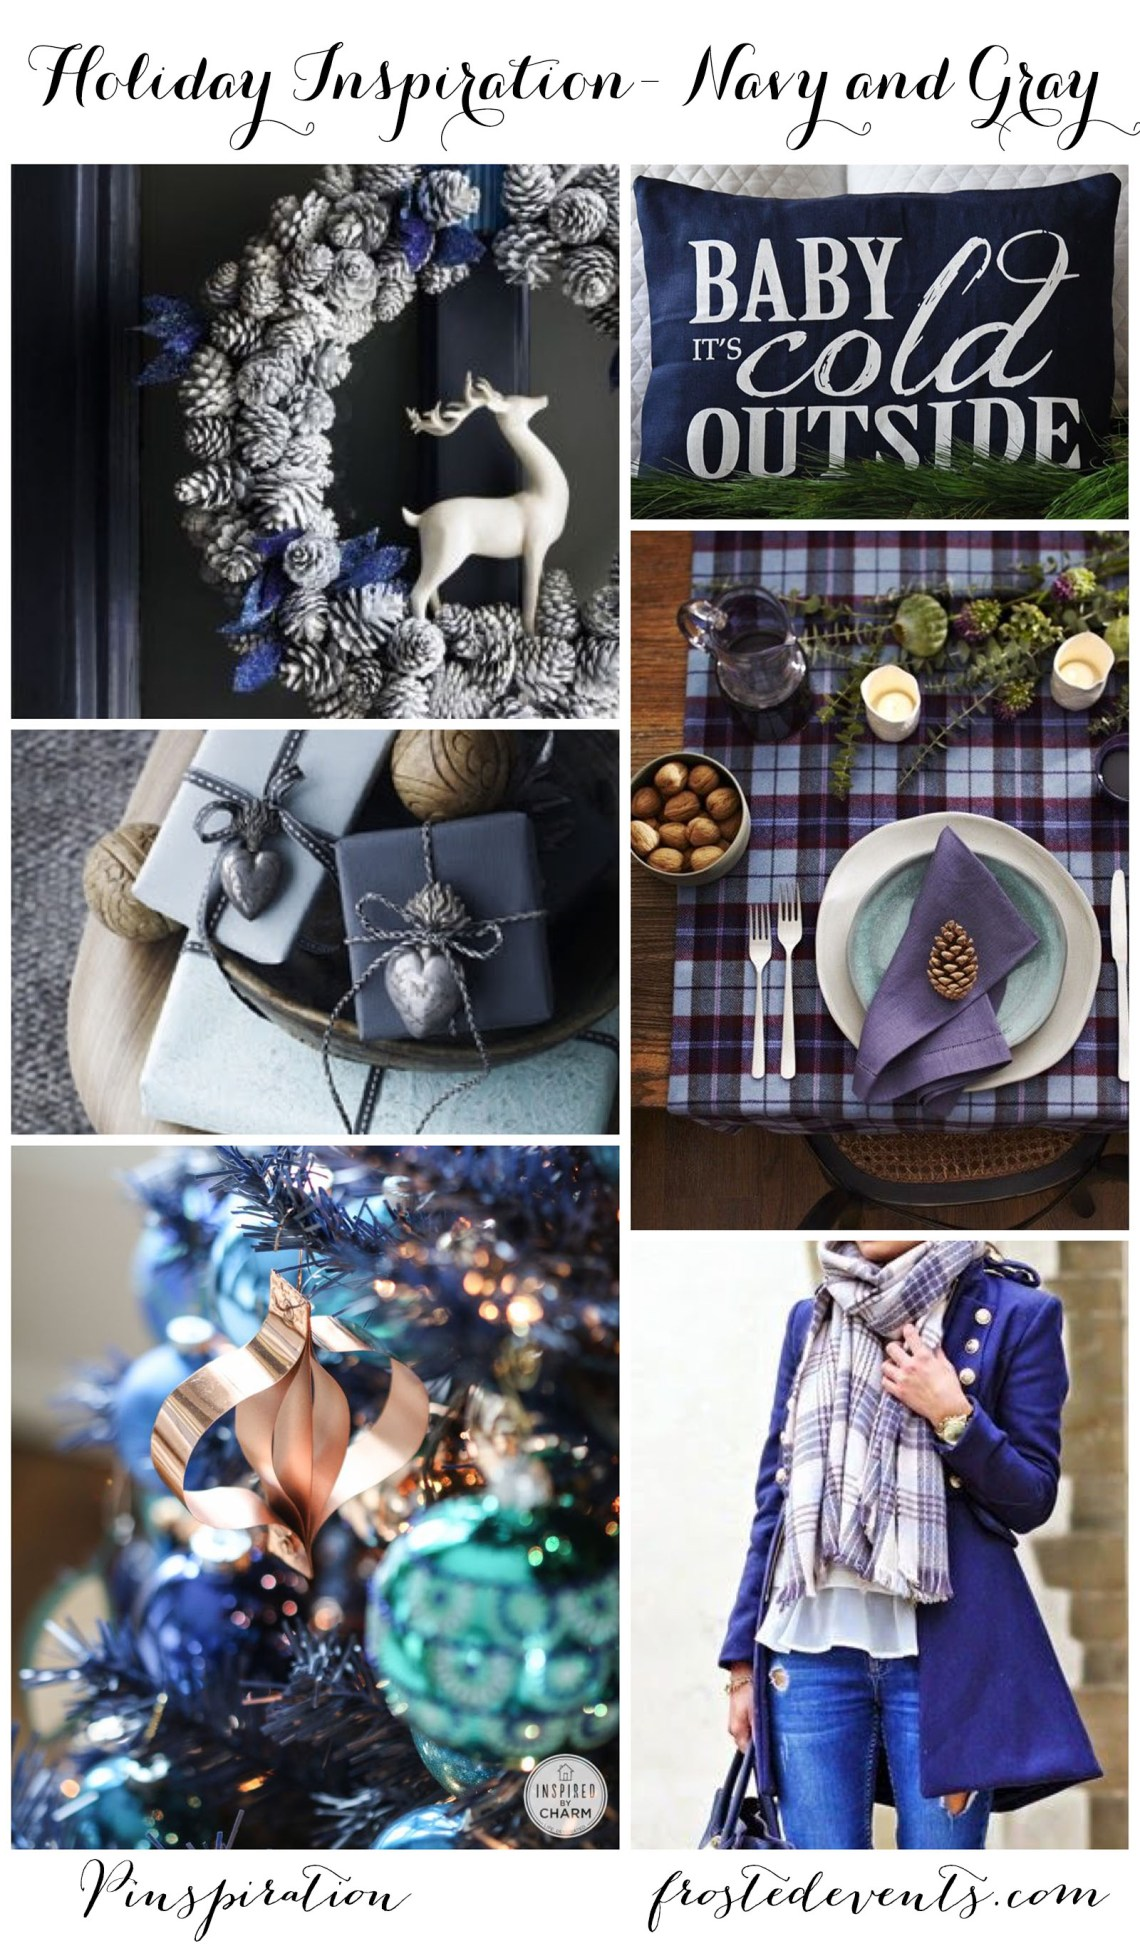 Christmas Decor Ideas + Blue and Gray Christmas + Blue Holiday Inspiration